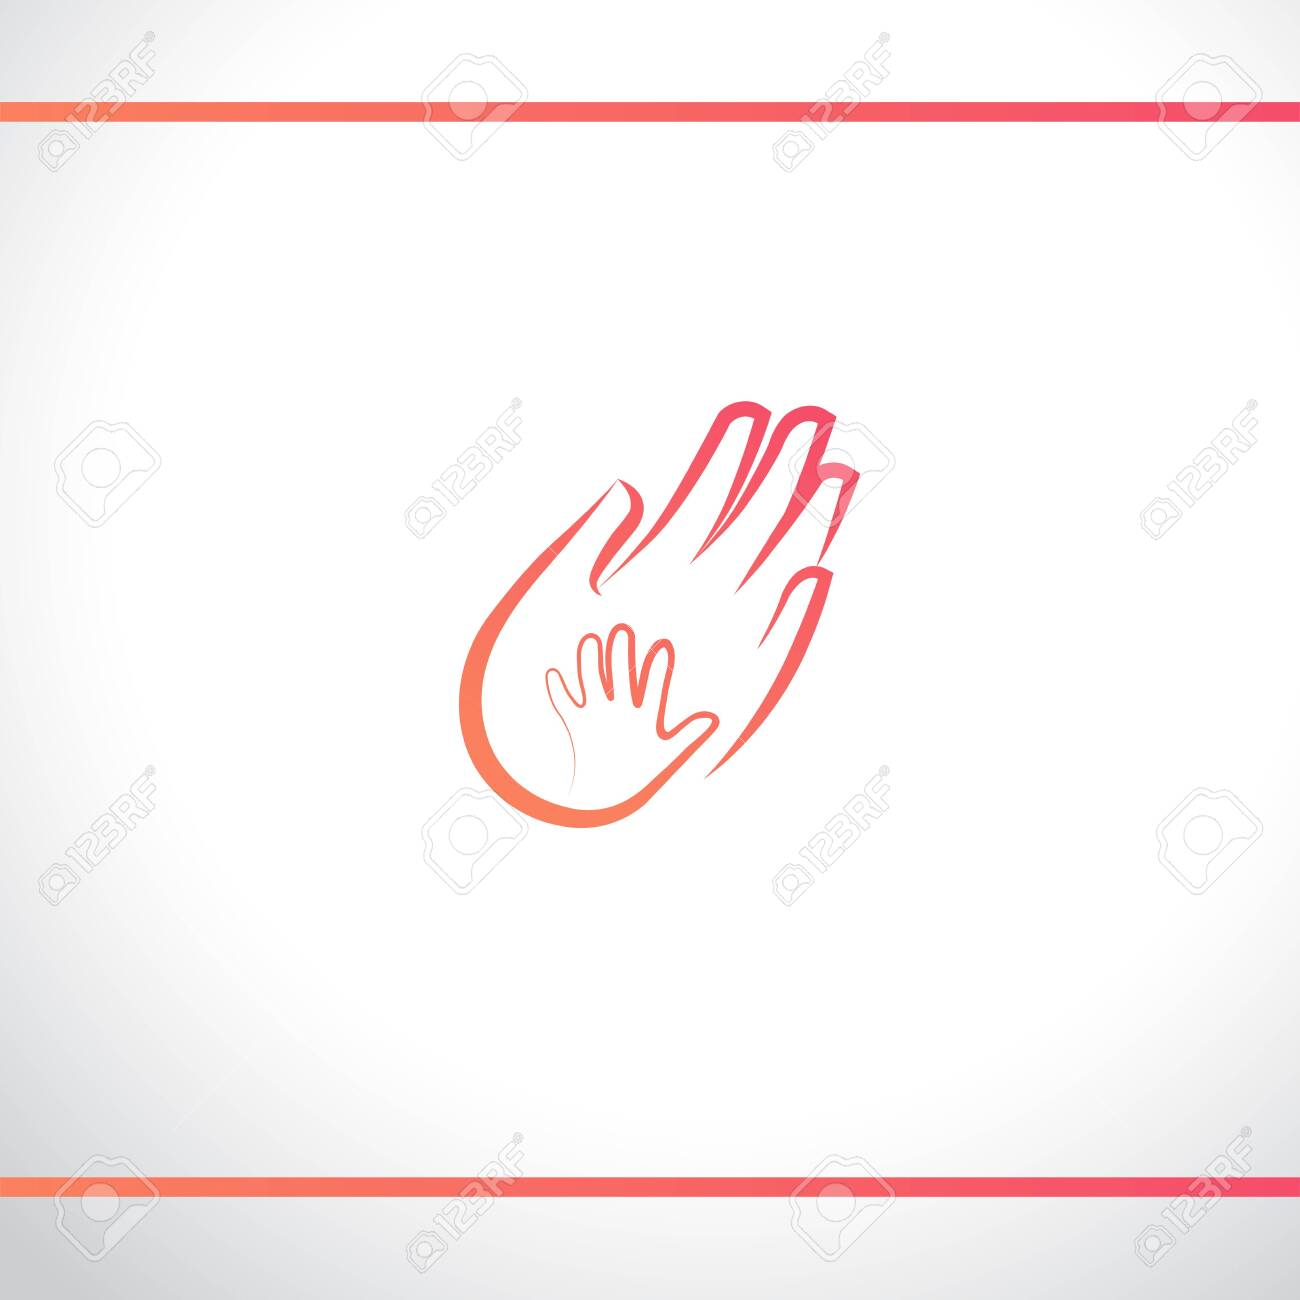 Hands Baby And Adult Mother And Child Father And Baby Parent Royalty Free Cliparts Vectors And Stock Illustration Image 134173023